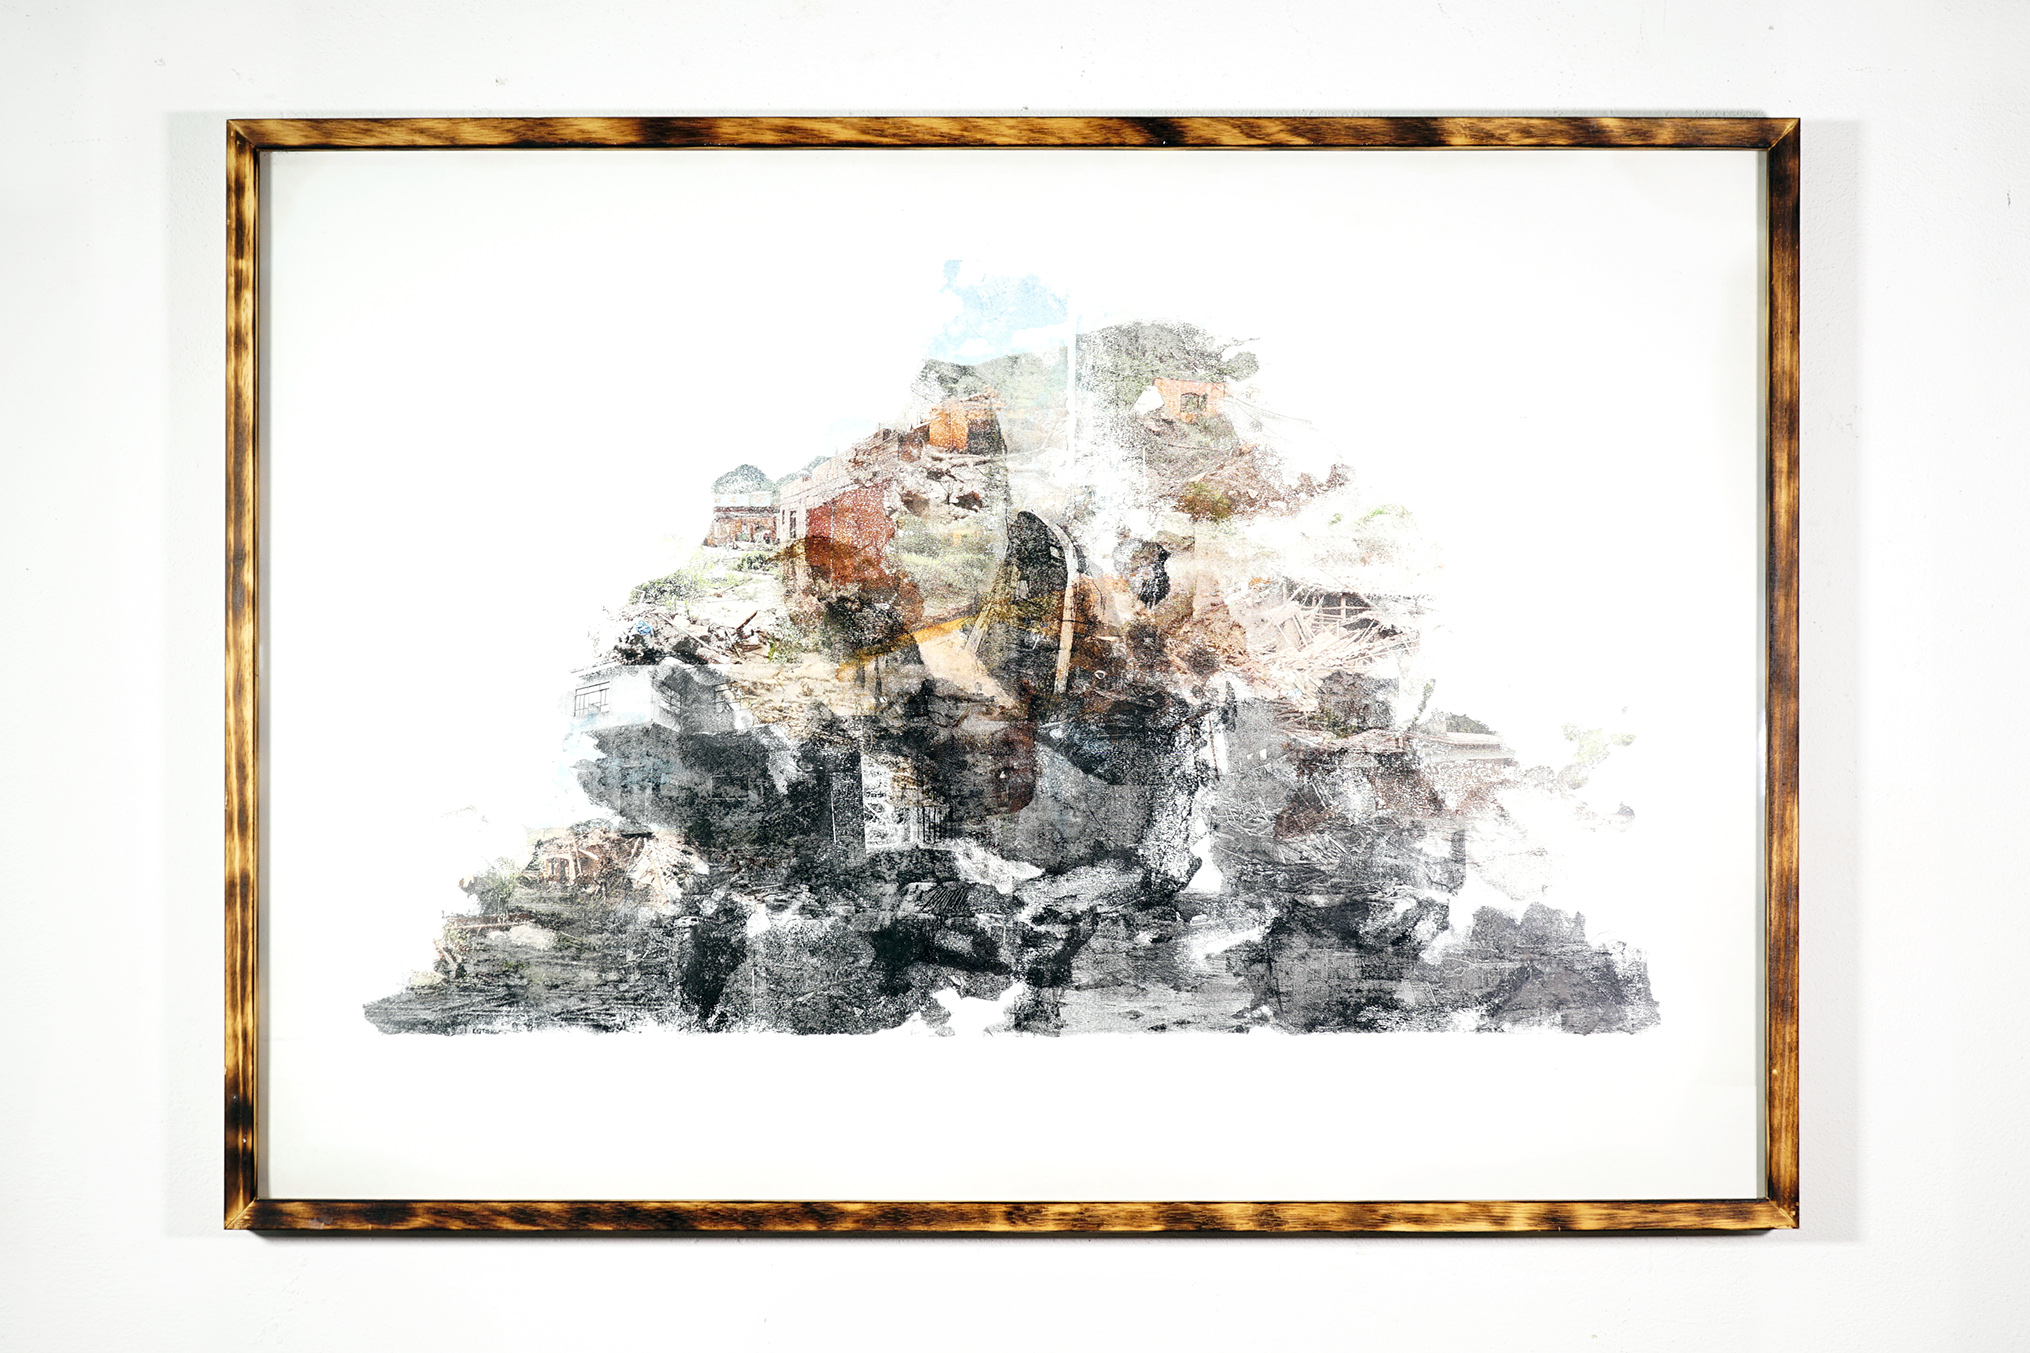 sustainability #001 - 73x103cm with frame